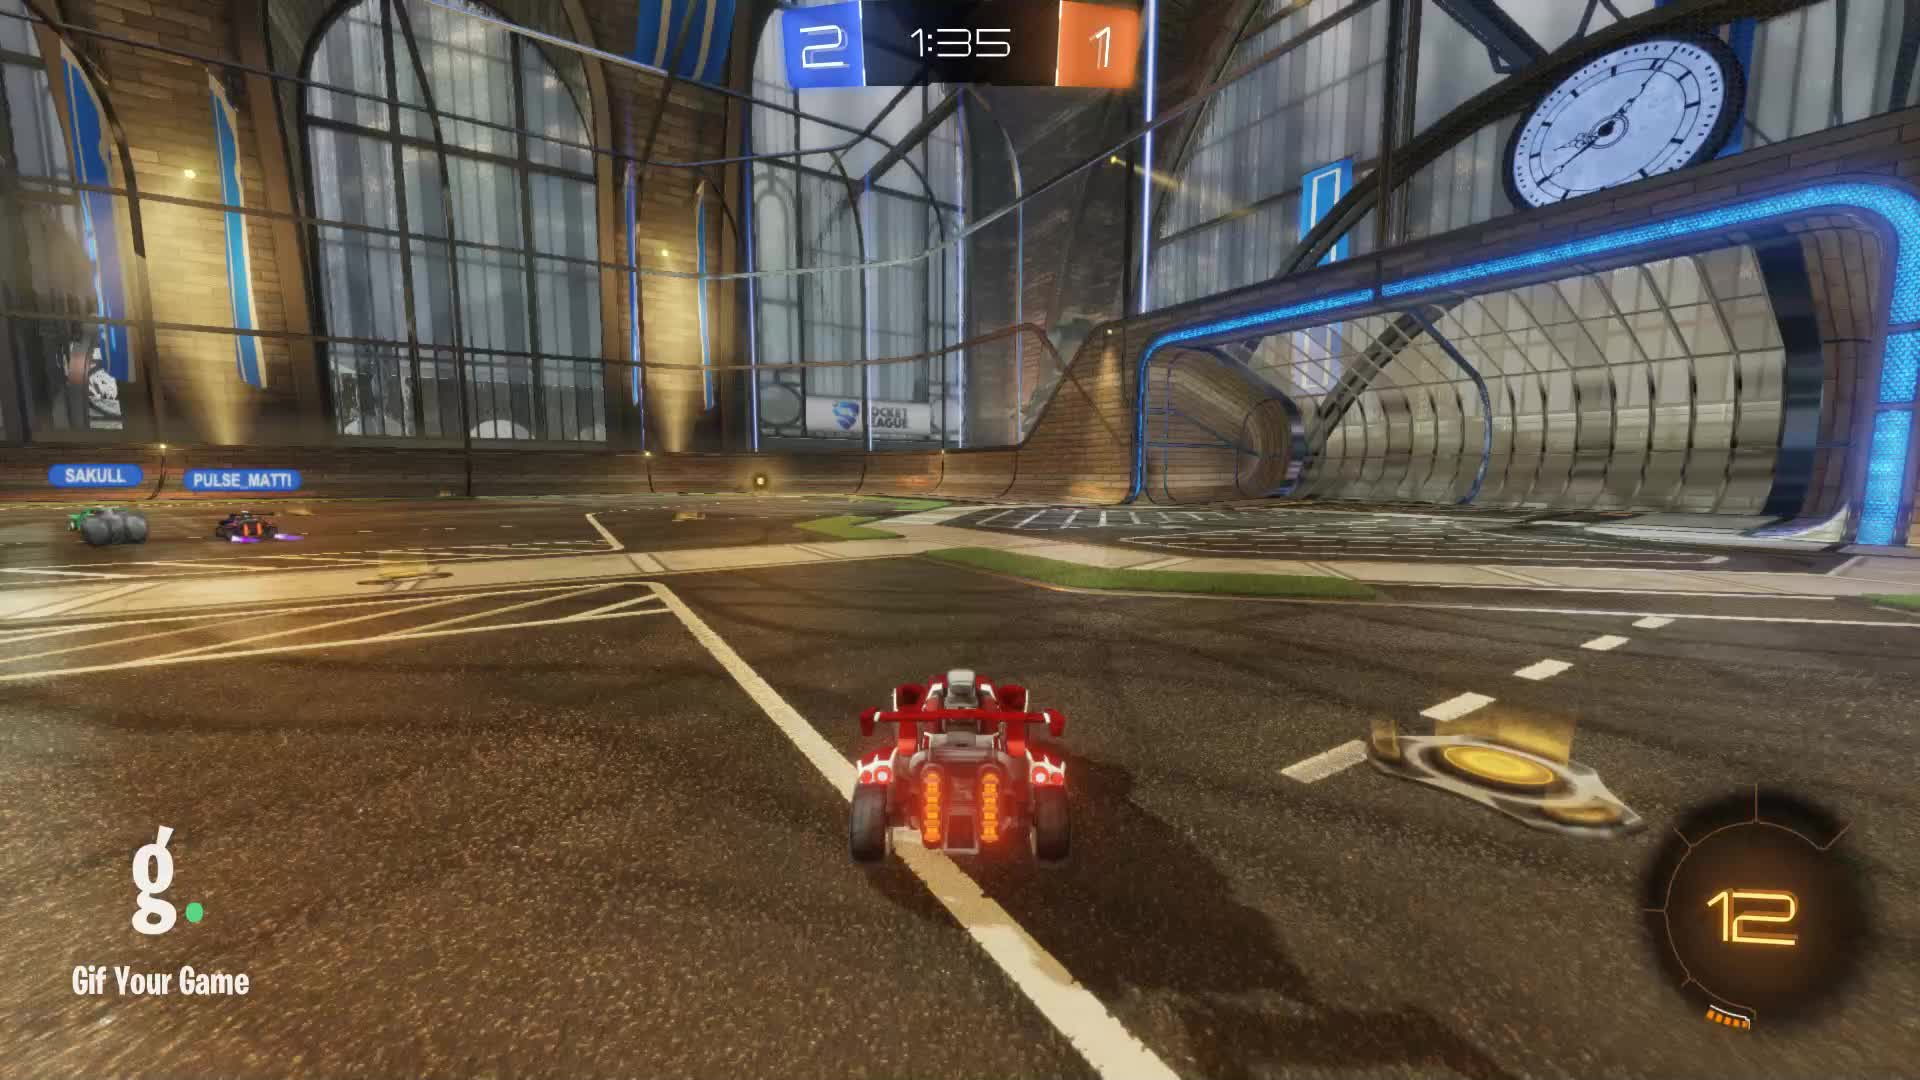 Gif Your Game, GifYourGame, Goal, Horizon, Rocket League, RocketLeague, Goal 4: Horizon GIFs